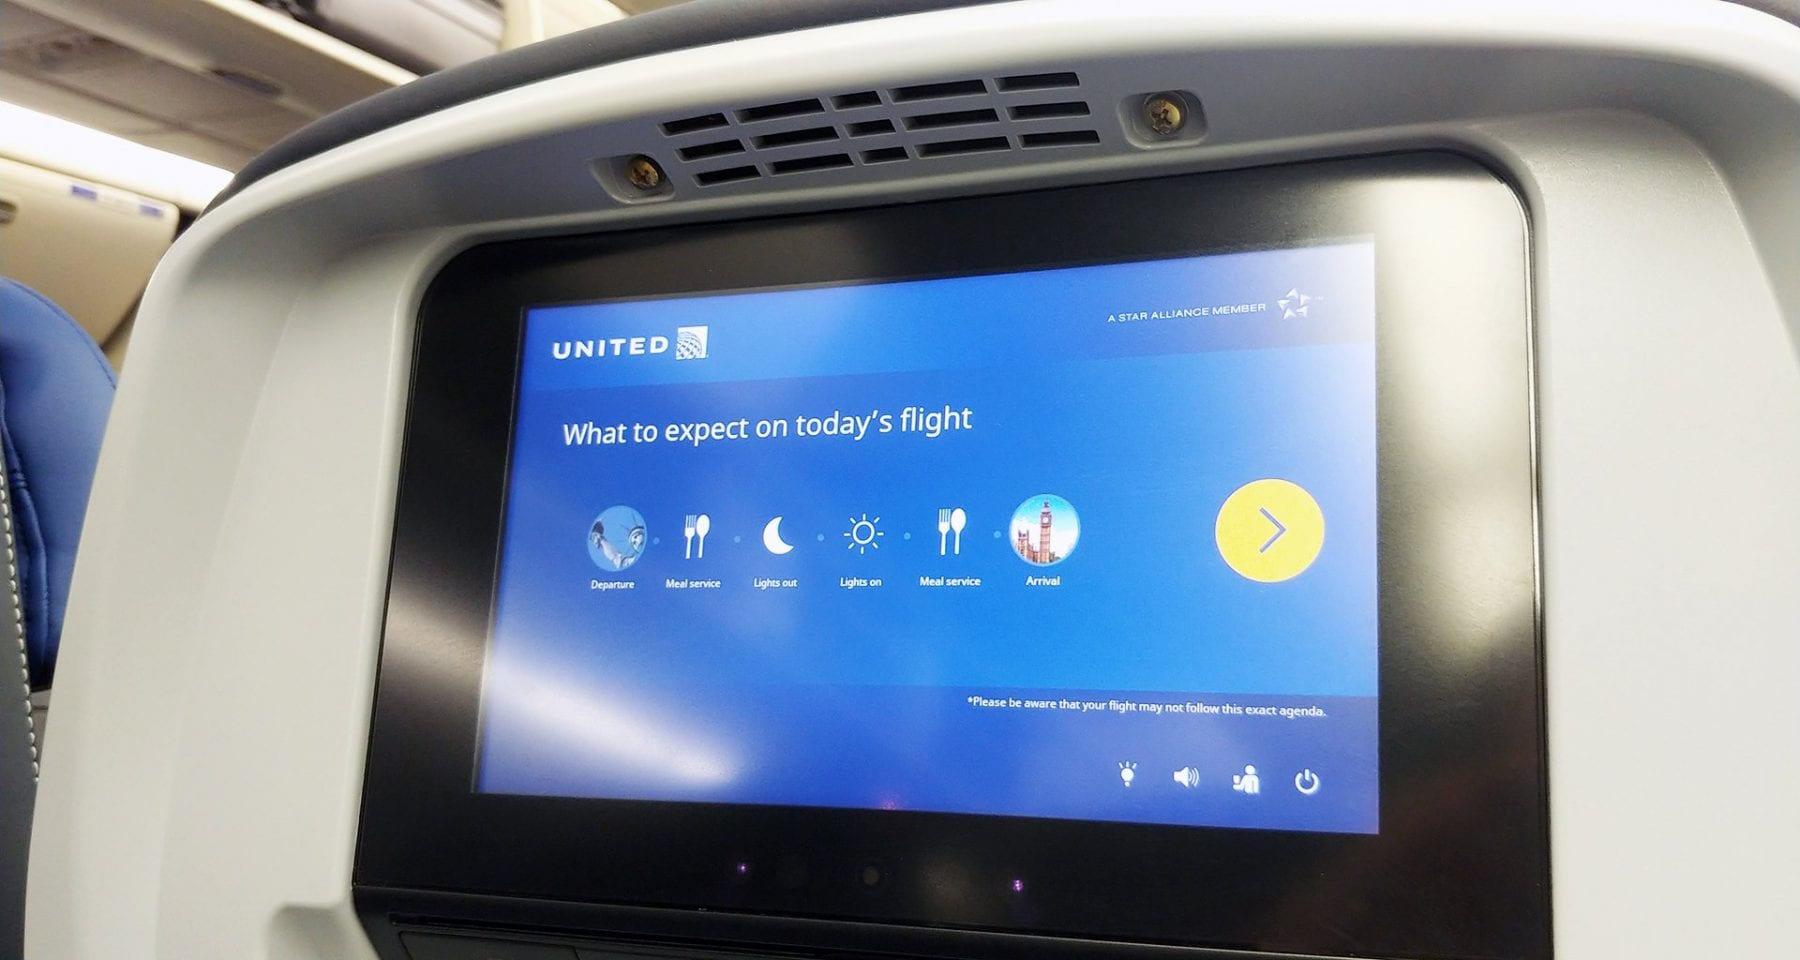 United Airlines Inflight Service Sequence